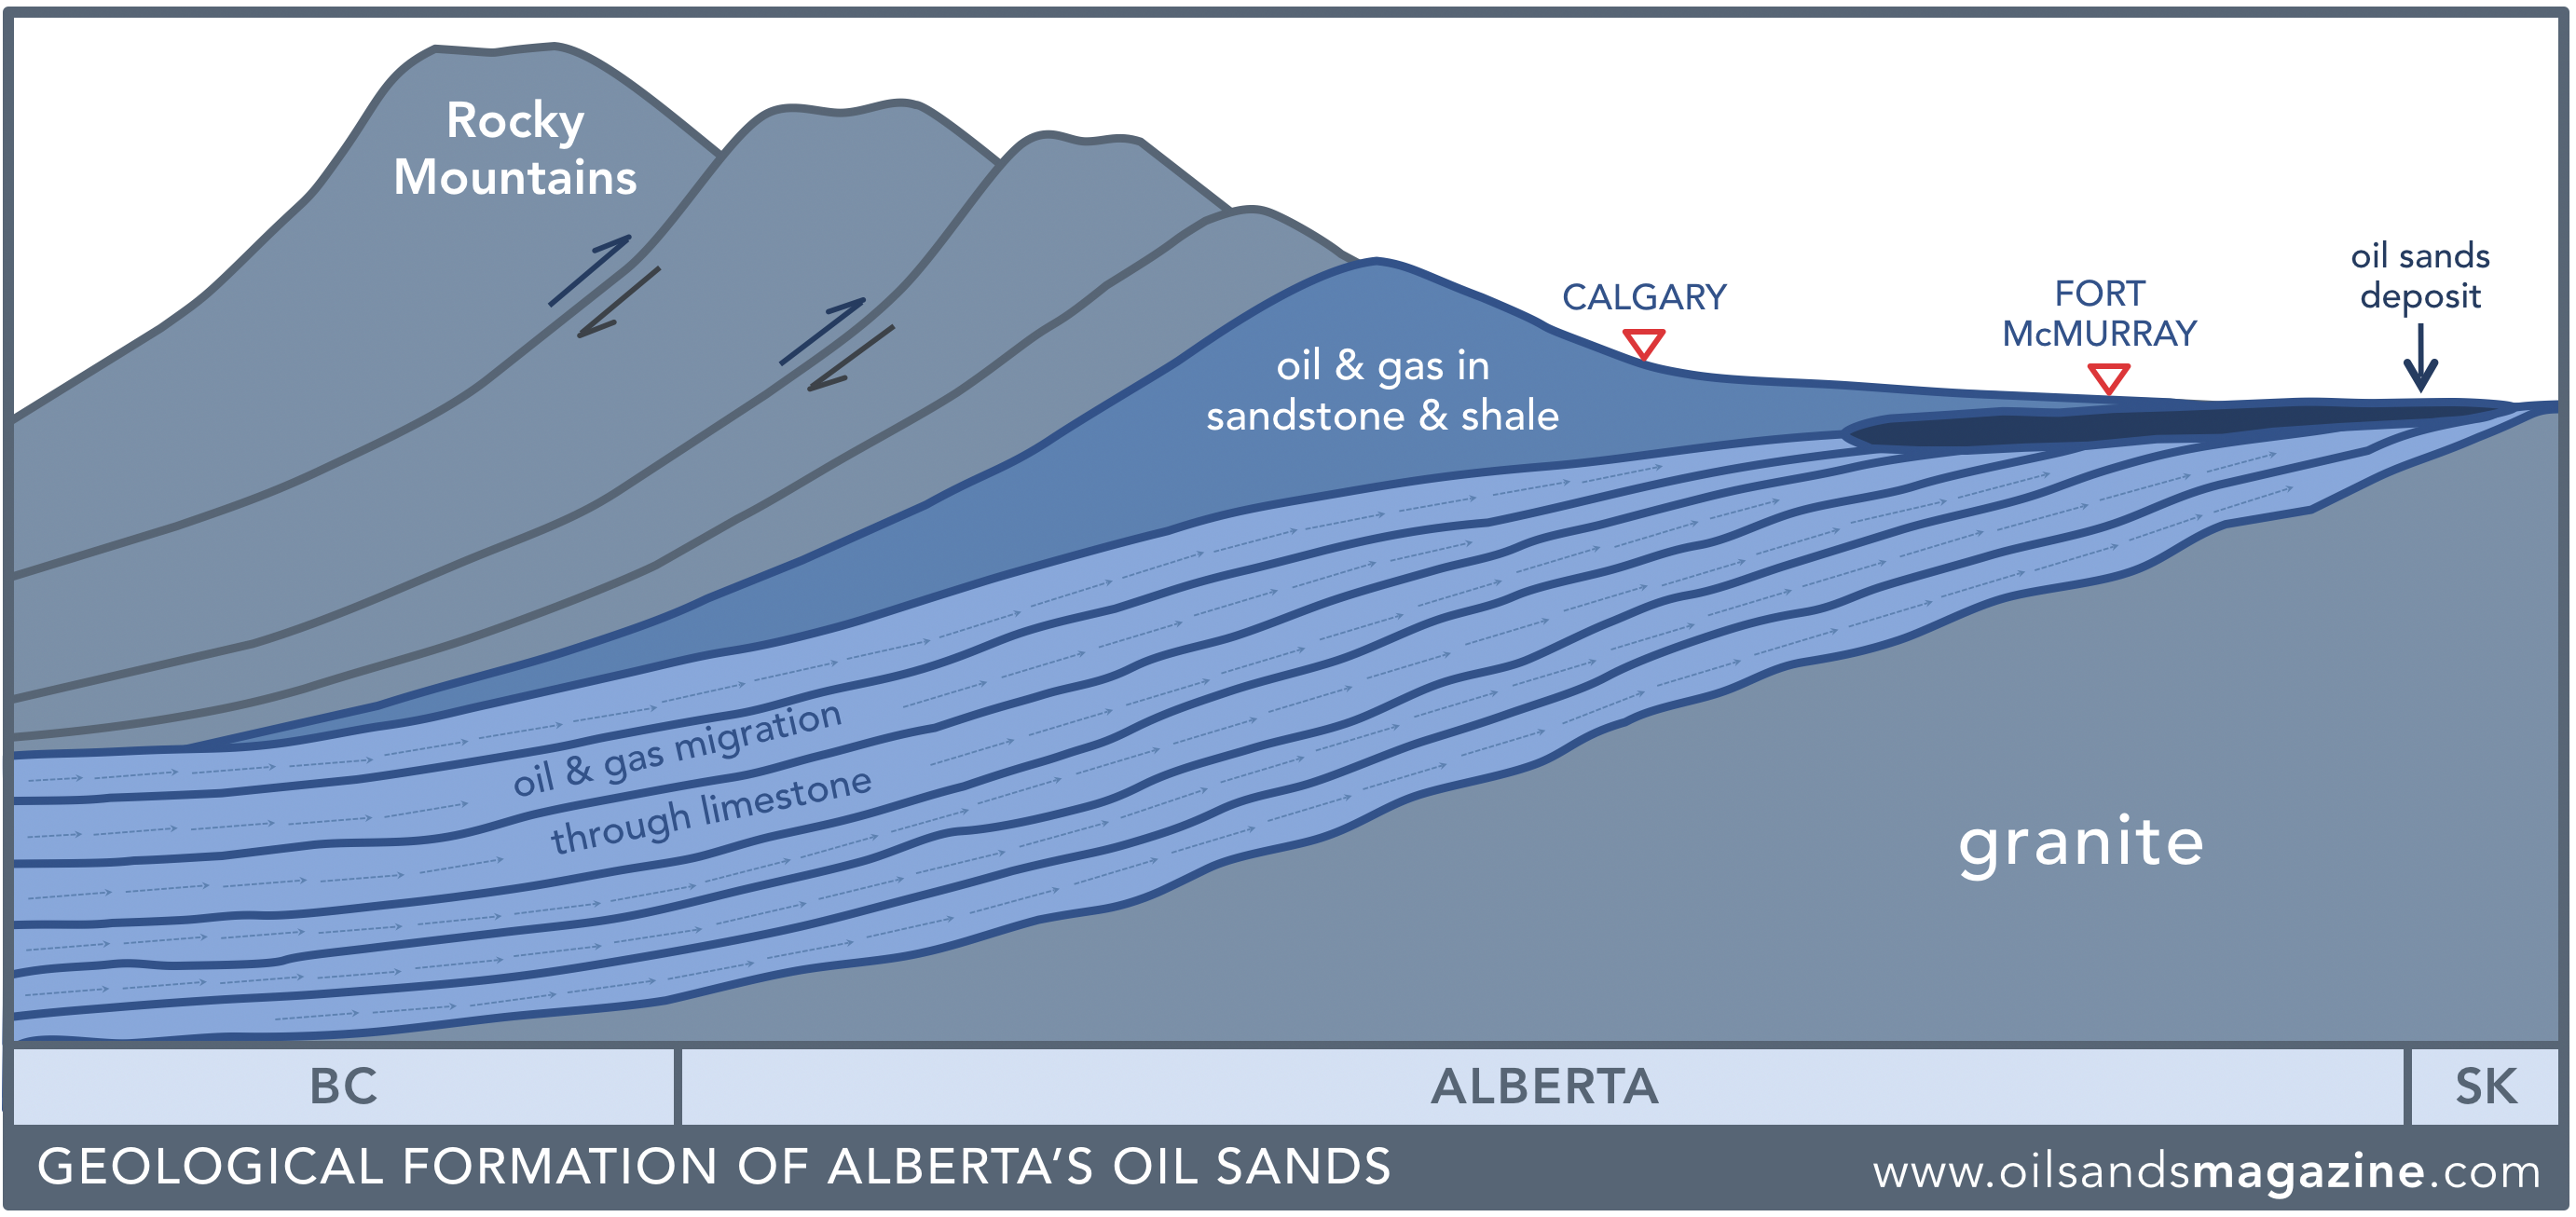 Which of the following processes transforms oil-saturated sandstones into tar sands?